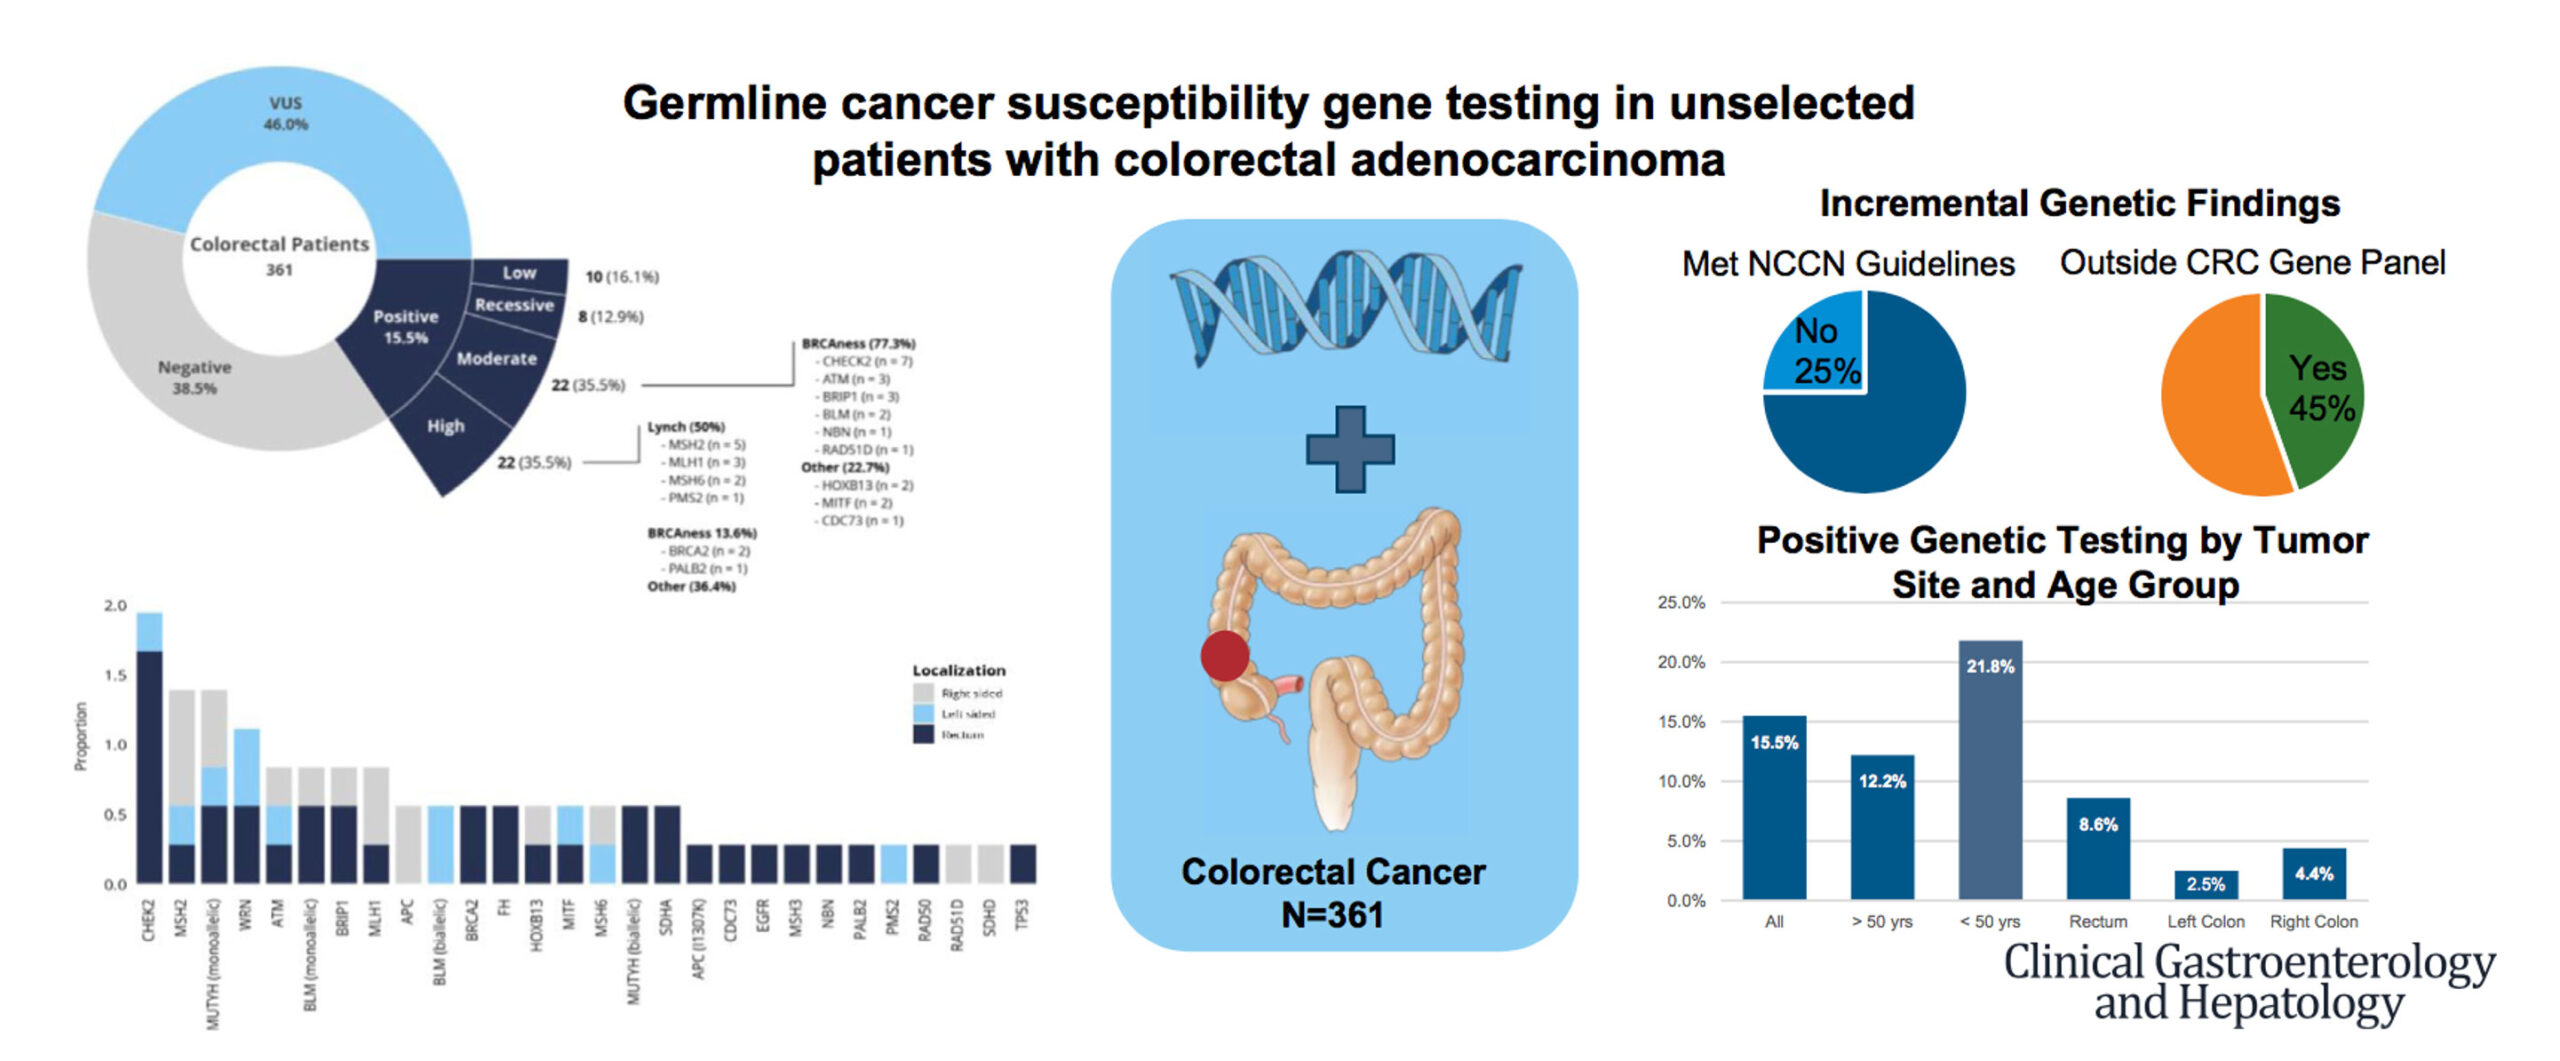 Germline Cancer Susceptibility Gene Testing in Unselected Patients With Colorectal Adenocarcinoma: A Multicenter Prospective Study.